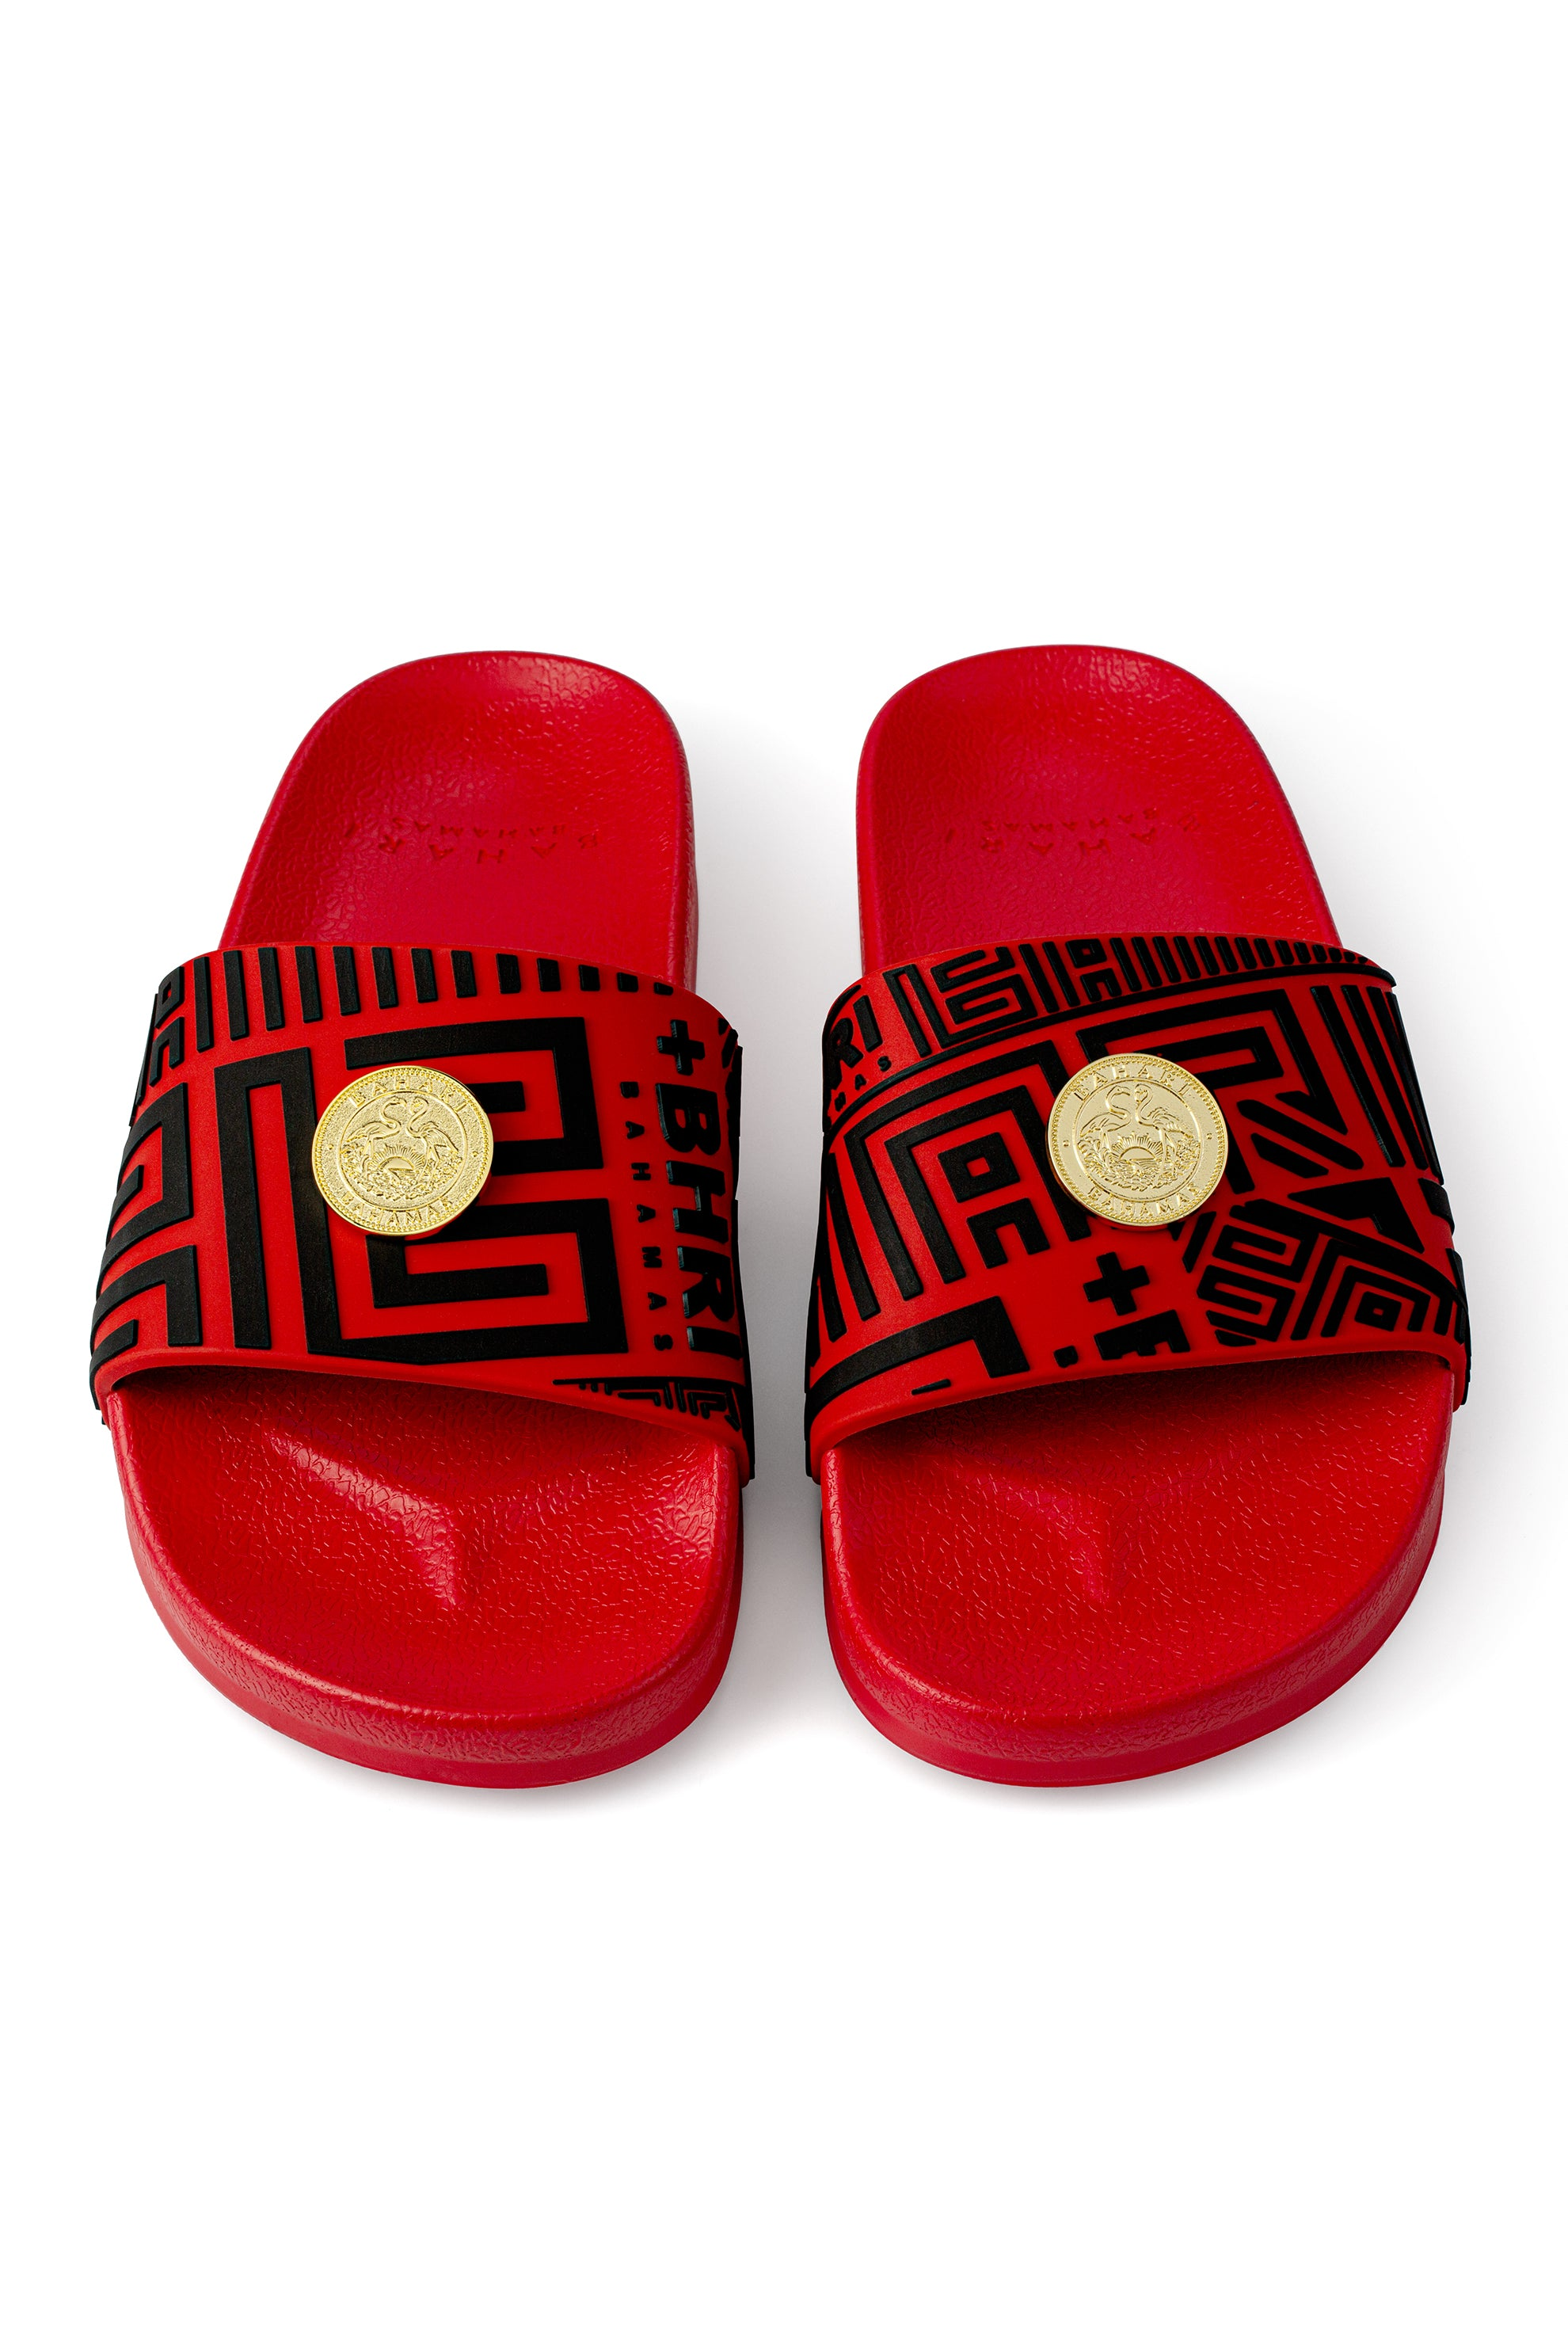 UNISEX VIDA REX SILICONE SLIDES - RED & BLACK